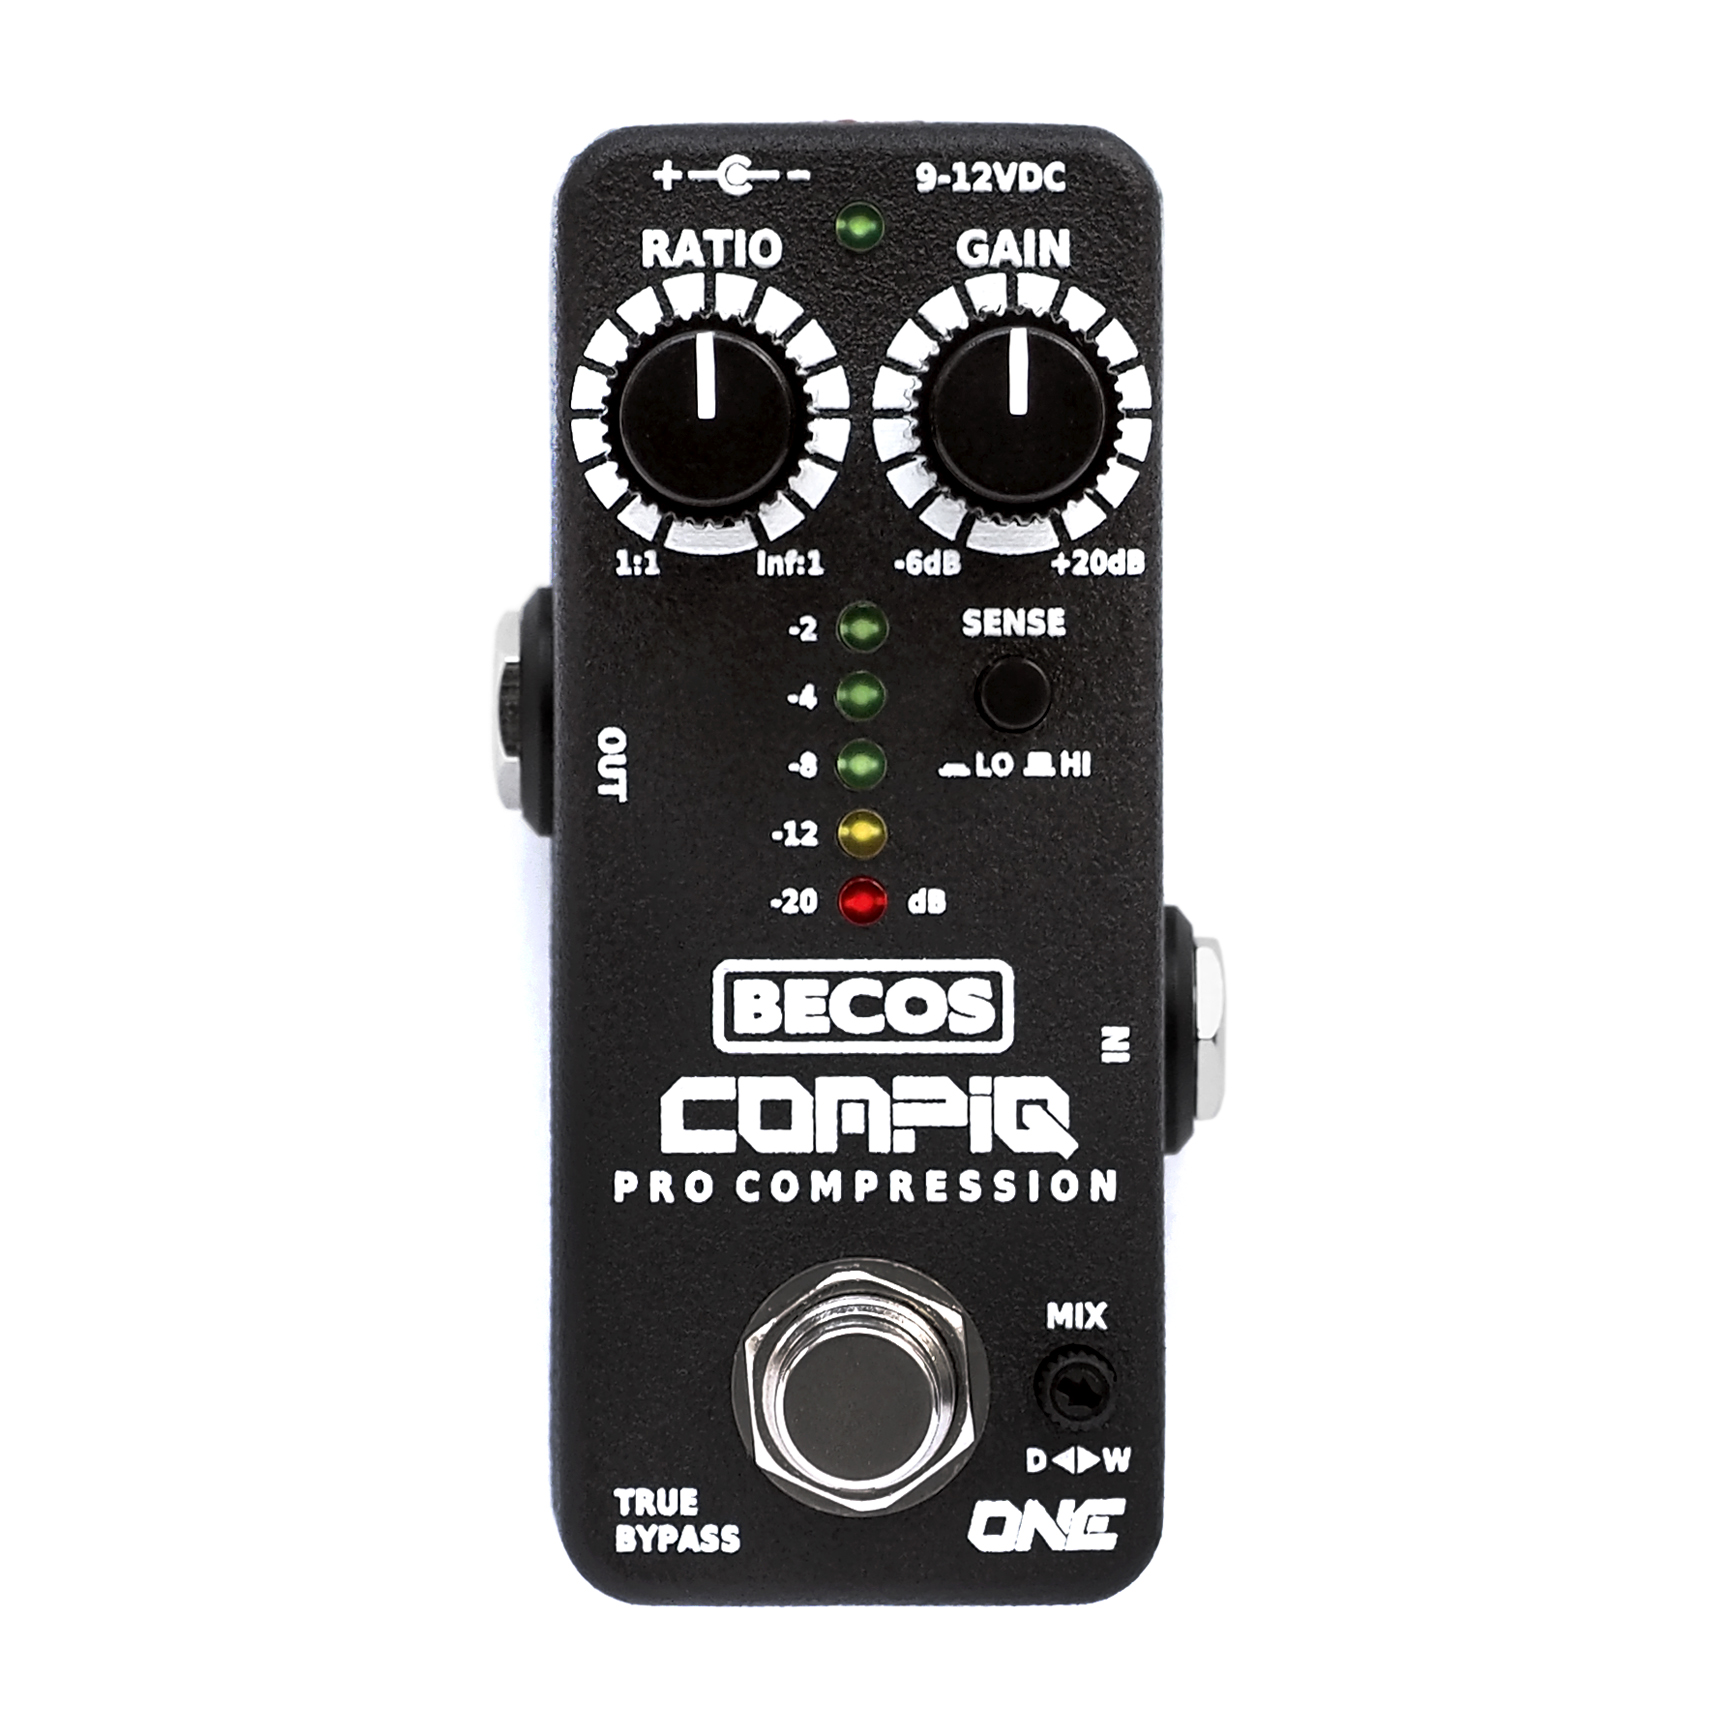 compiq mini one pro compressor pedal for guitar bass becosfx. Black Bedroom Furniture Sets. Home Design Ideas